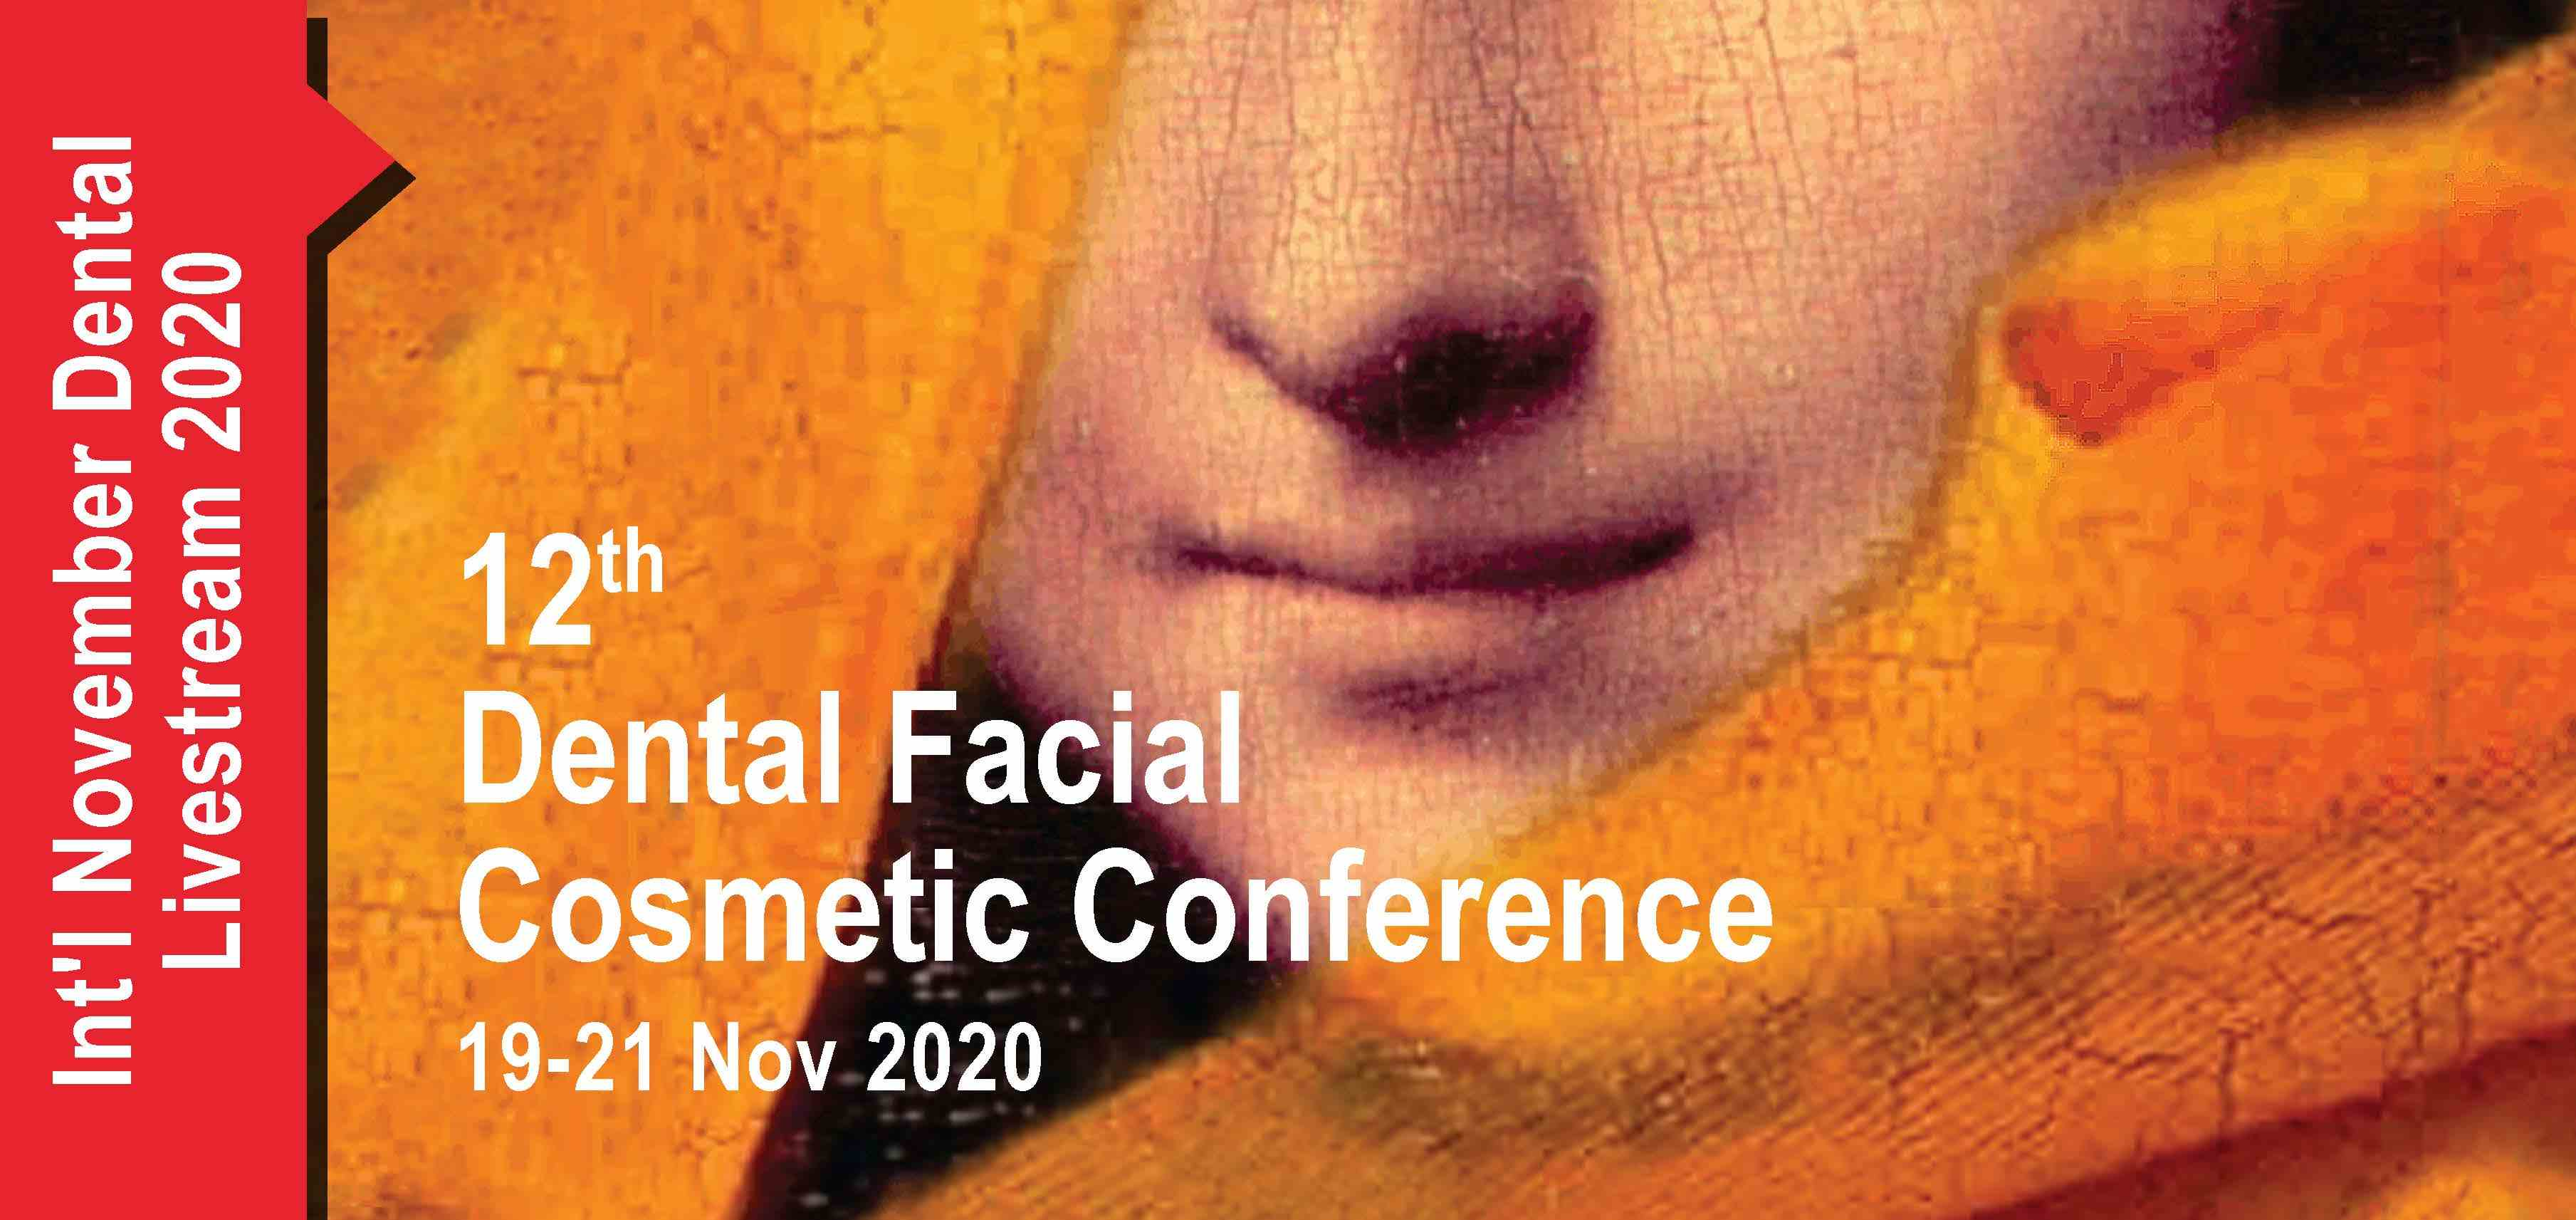 12TH DENTAL FACIAL COSMETIC INTERNATIONAL CONFERENCE